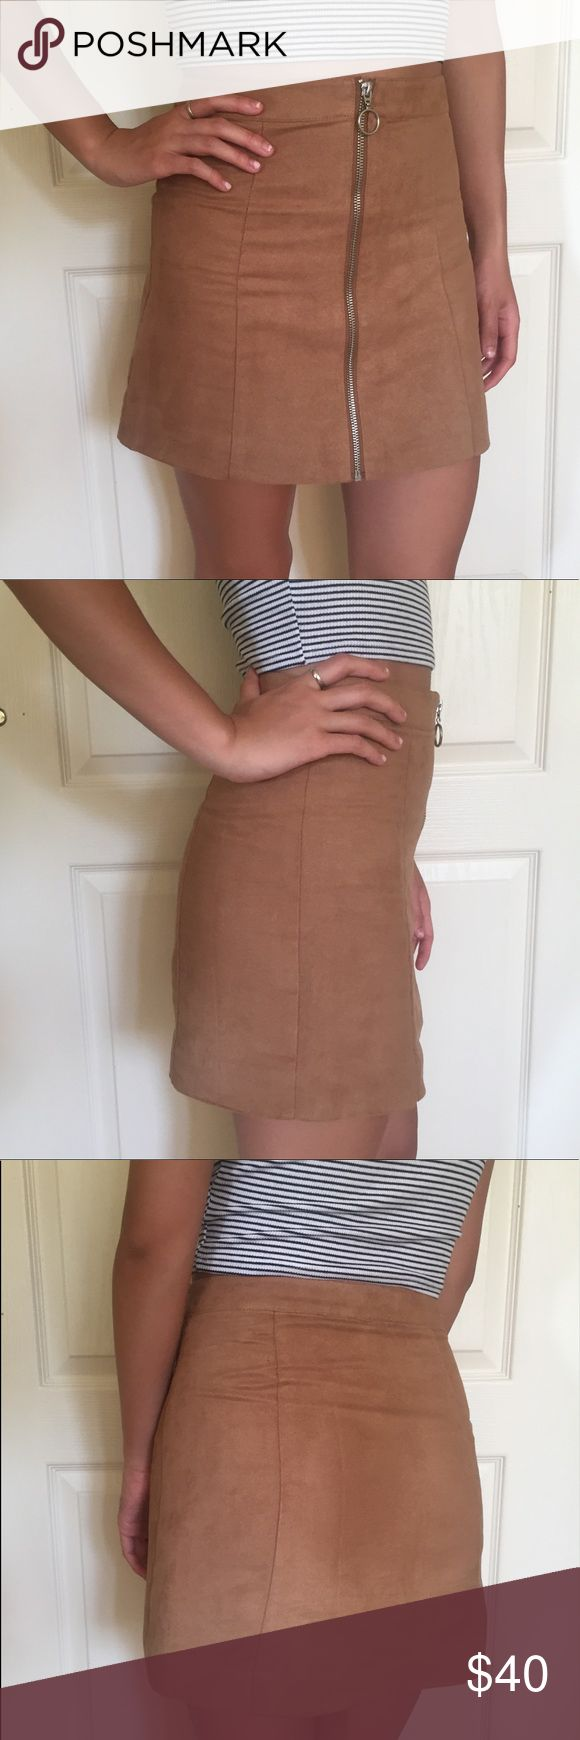 Faux suede camel zip skirt Great condition • so flattering • camel faux suede zip up skirt with zip detail • great quality • would fit size 25-26 imo • not Brandy, from h&m • cheaper on merc Brandy Melville Skirts Mini